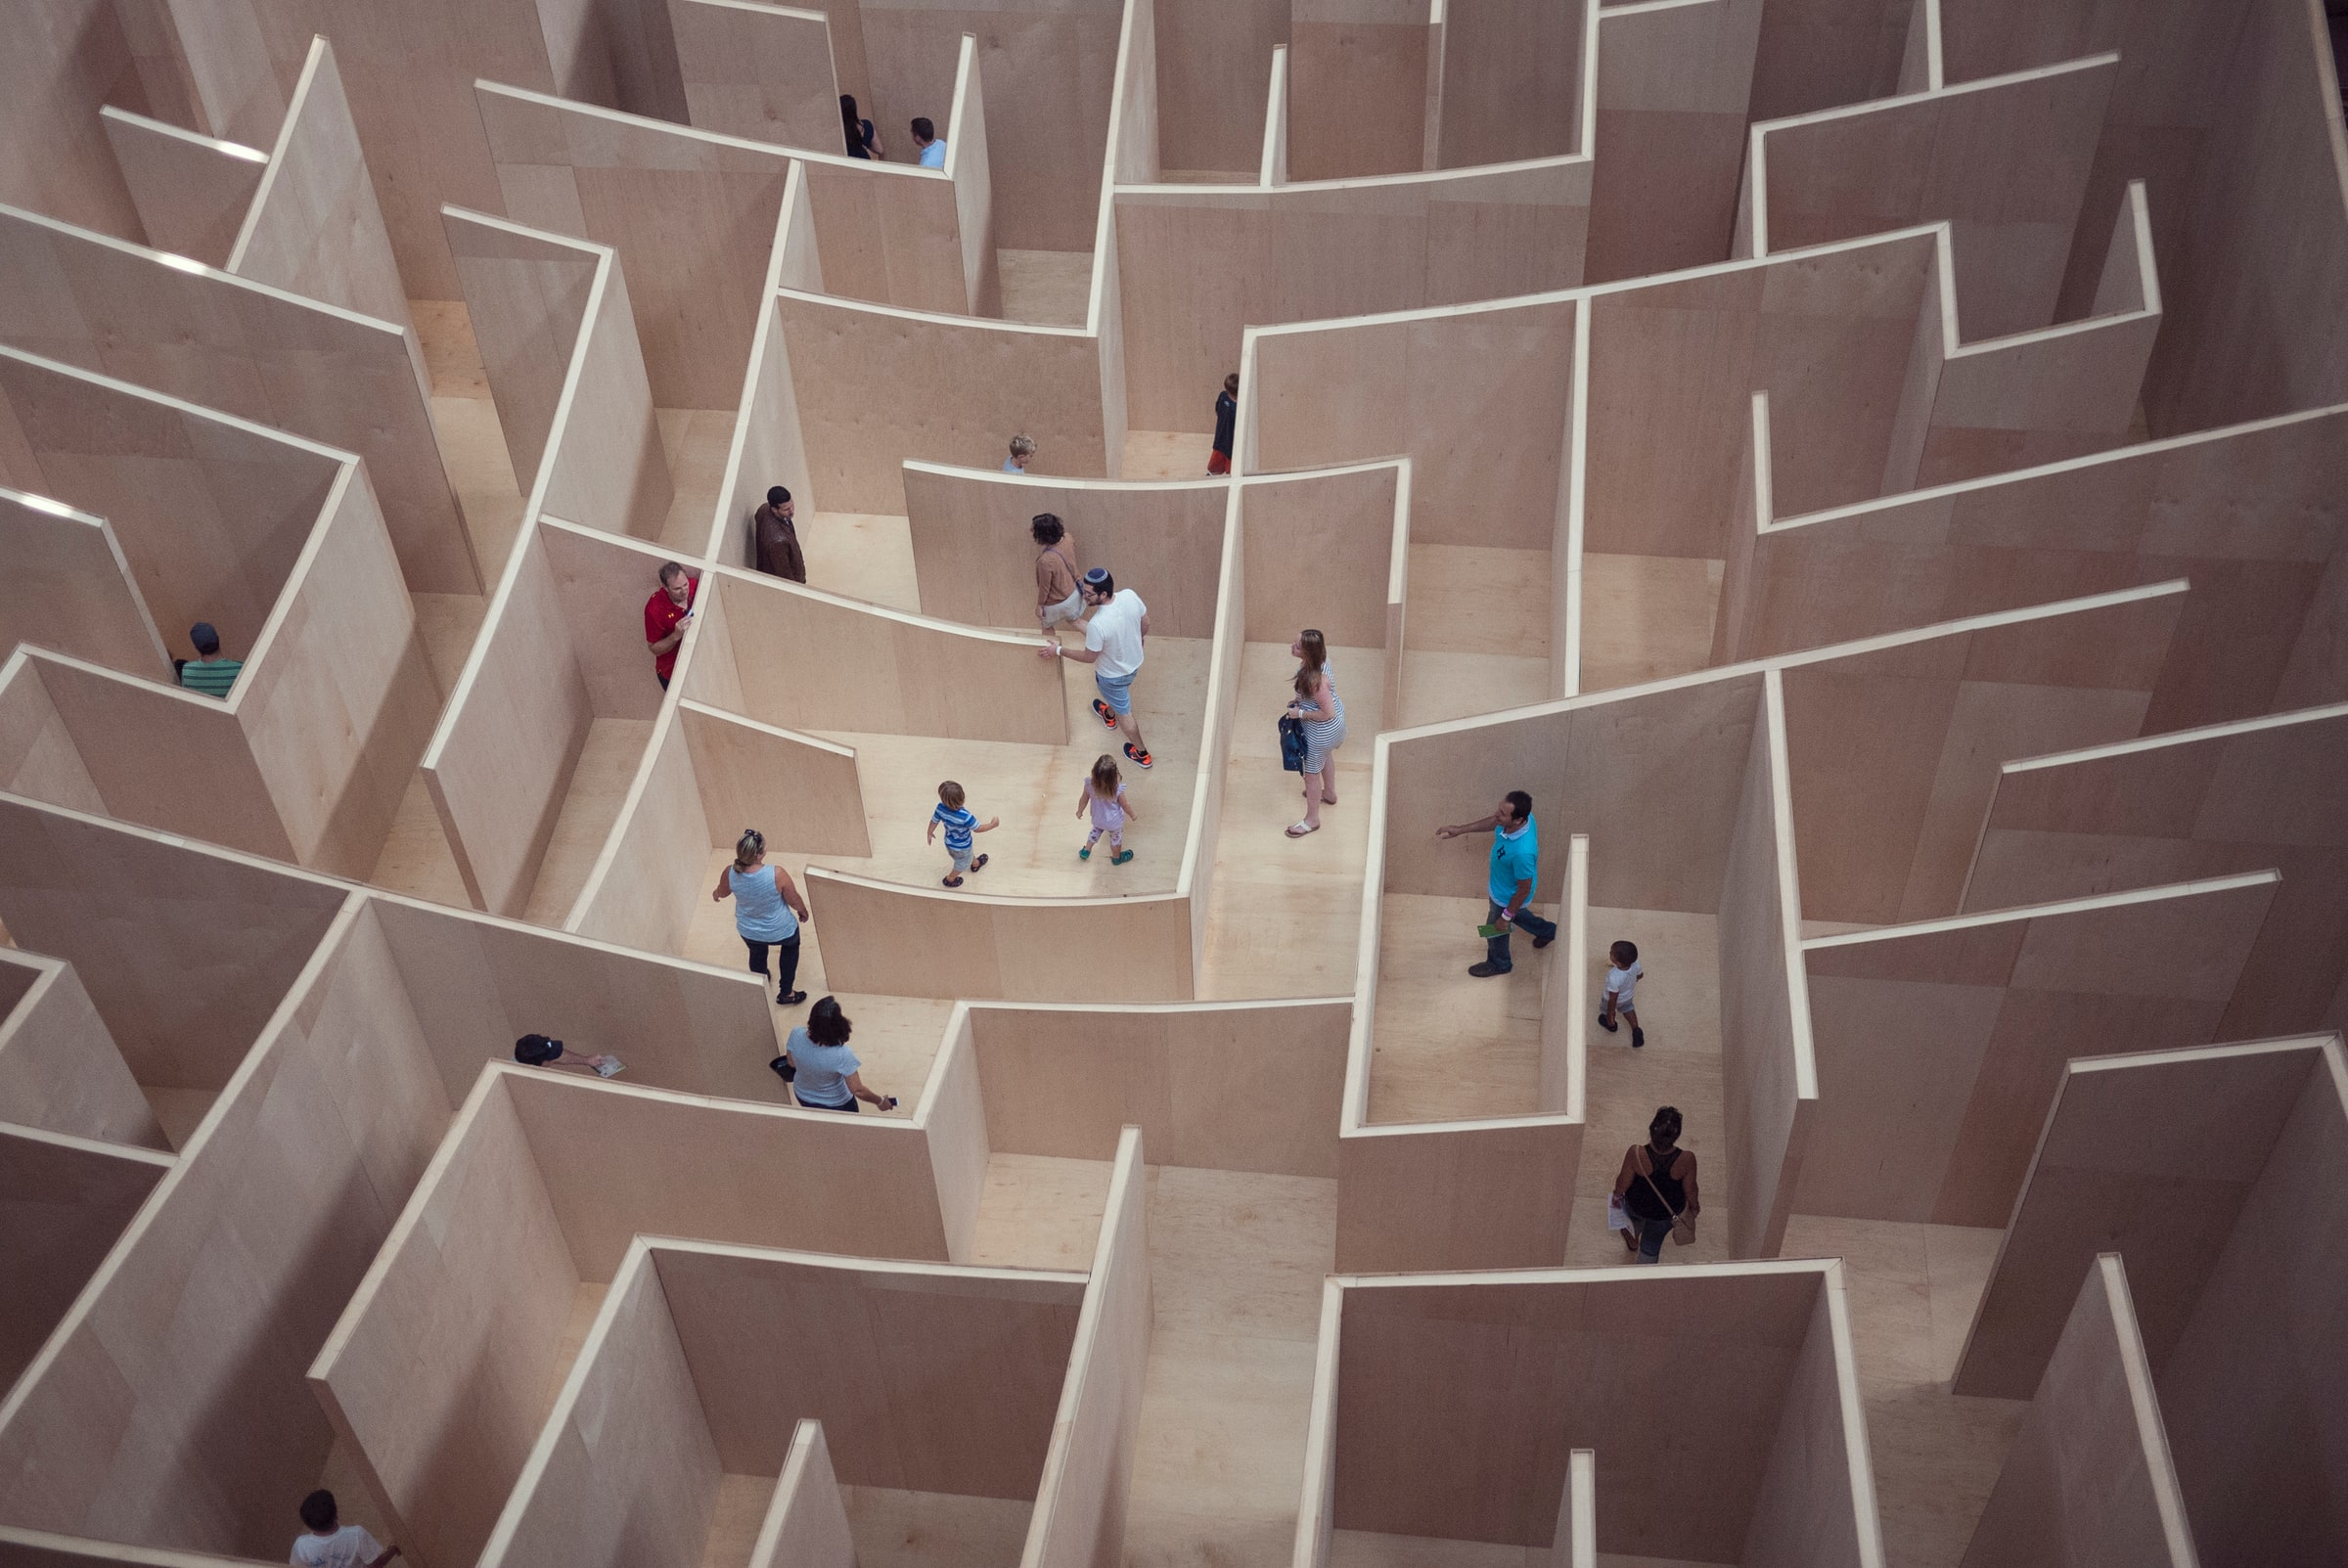 People lost in a maze